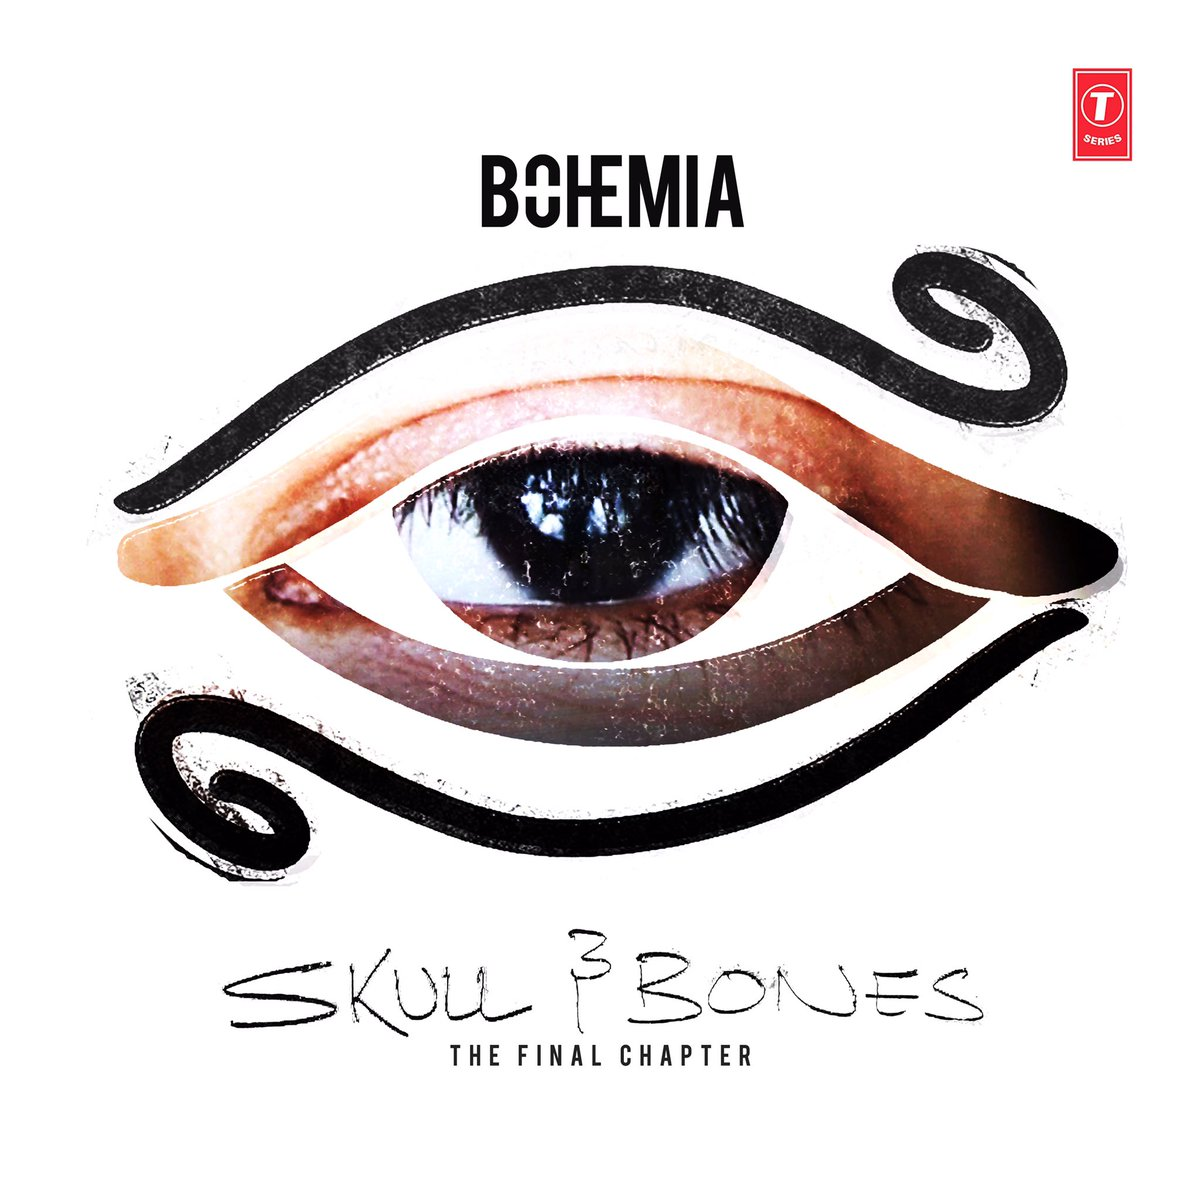 skull & bones the final chapter bohemia the punjabi rapper - kali denali music